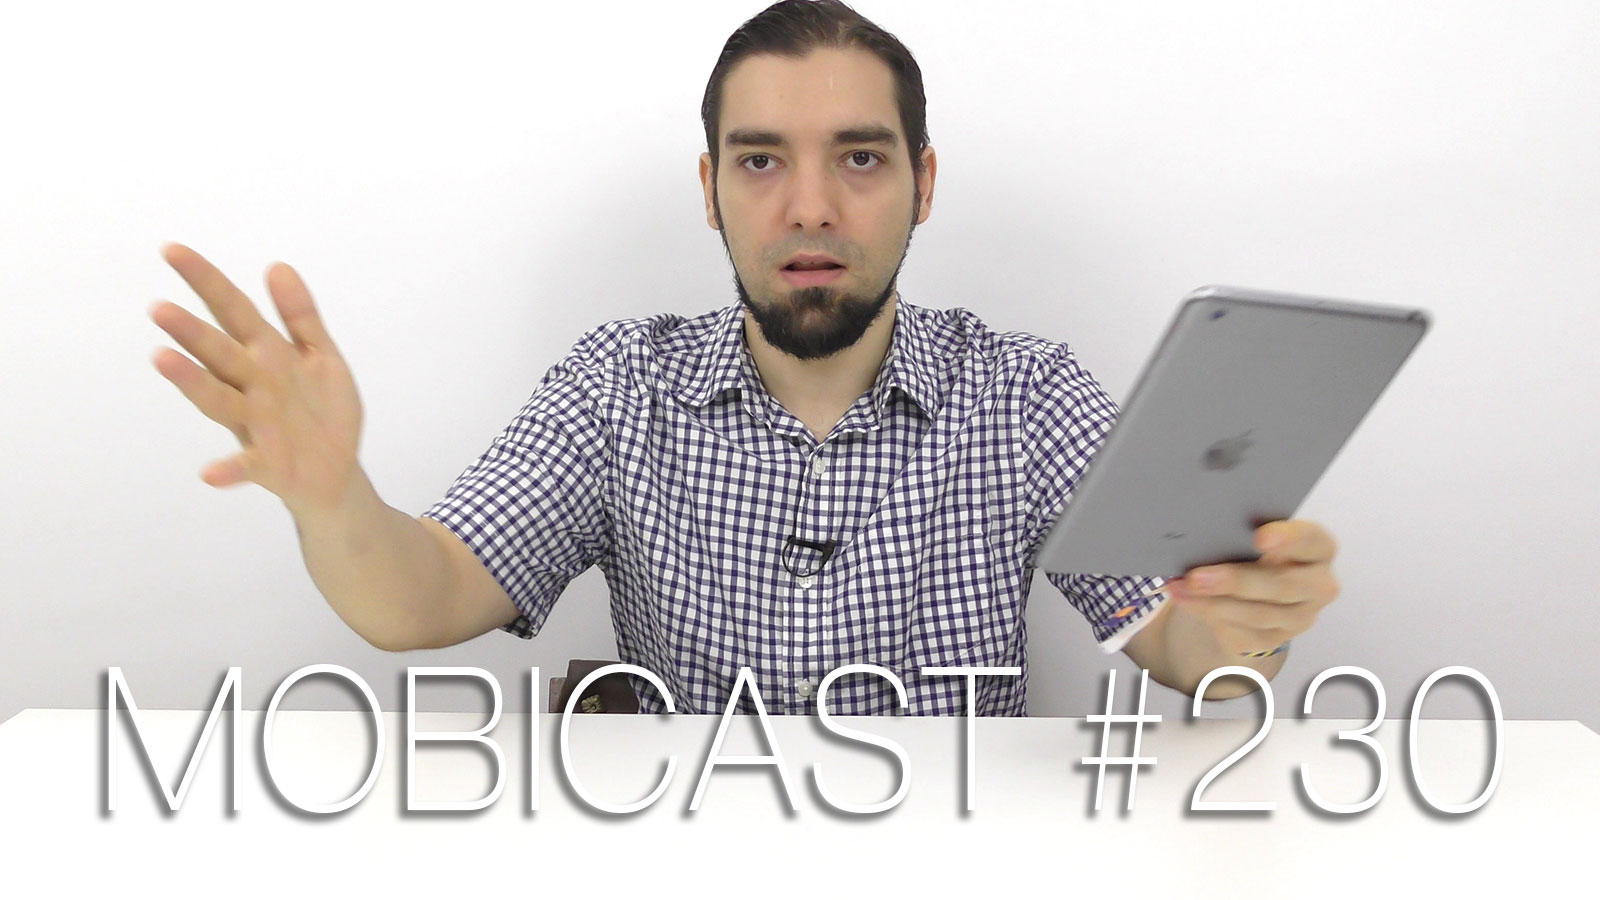 Mobicast #230: Podcast/ Videocast Mobilissimo.ro despre lansarea lui Galaxy Note 9, Summer Well 2018, Android 9.0 Pie şi Fortnite pe Android